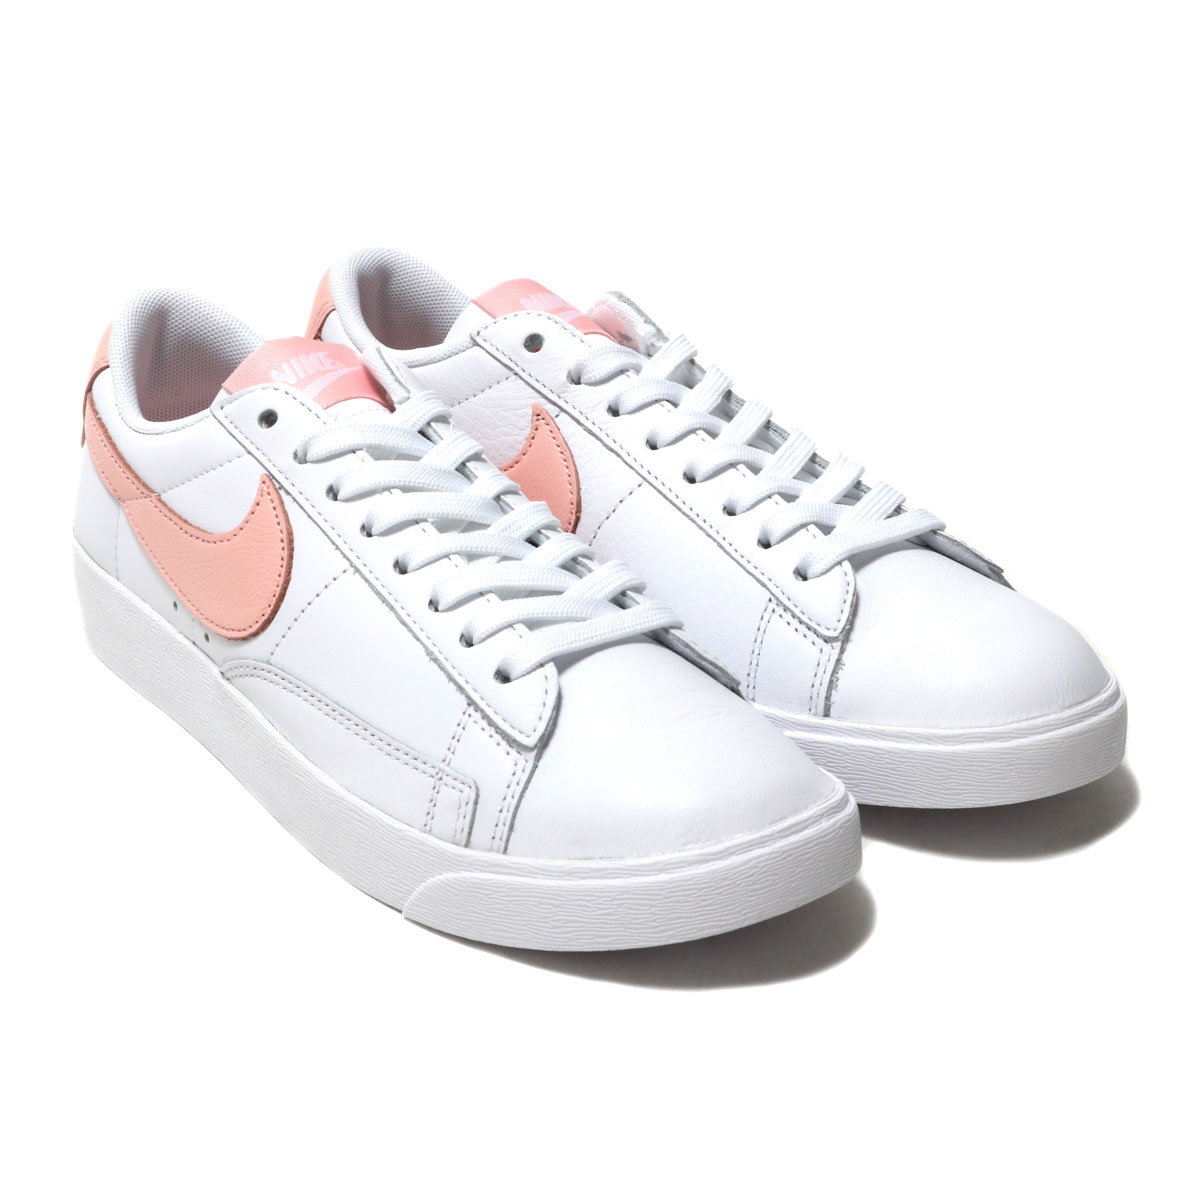 807597f4299 ... cheapest nike w blazer low le le white storm pink white 18fa i f31cd  51abb